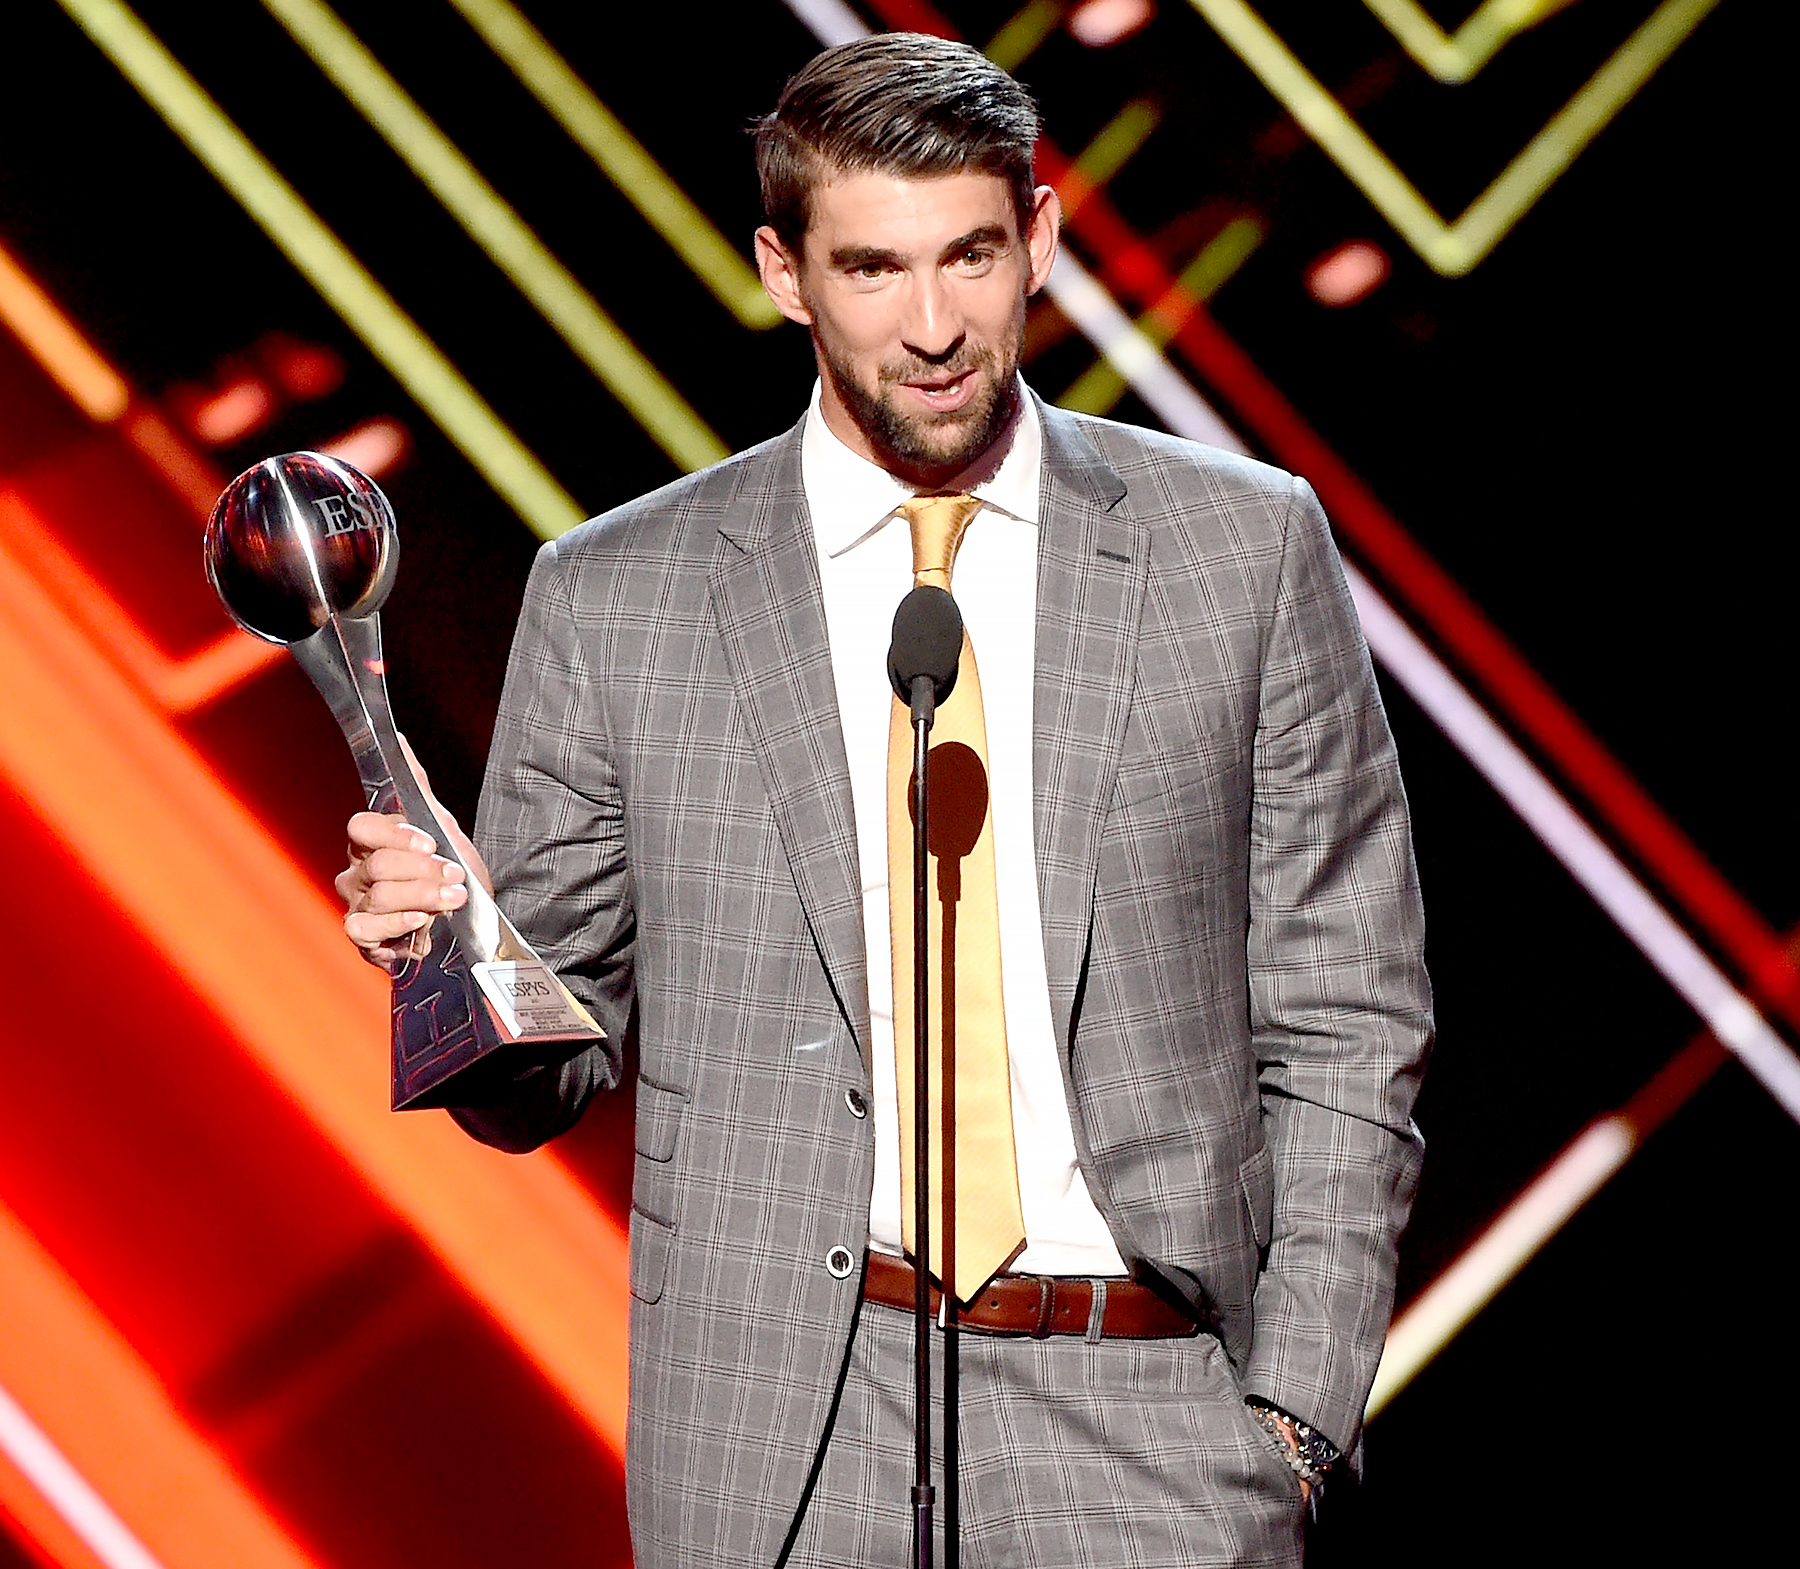 ESPYs 2017: Complete List Of Nominees And Winners